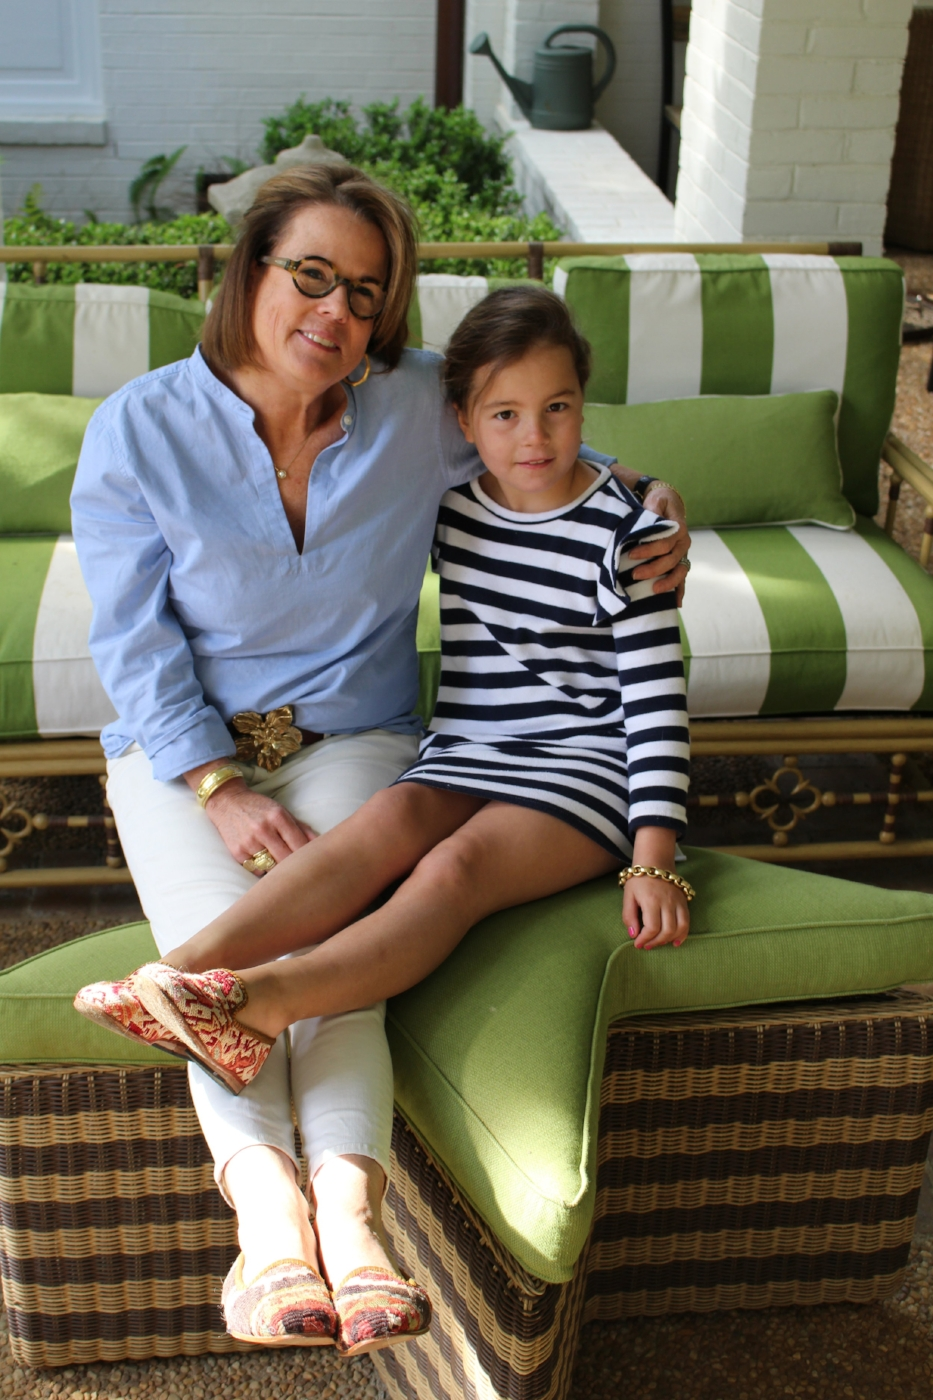 Coco sitting with her neighbor, Susan, outside on the patio wearing our Kilim shoes.